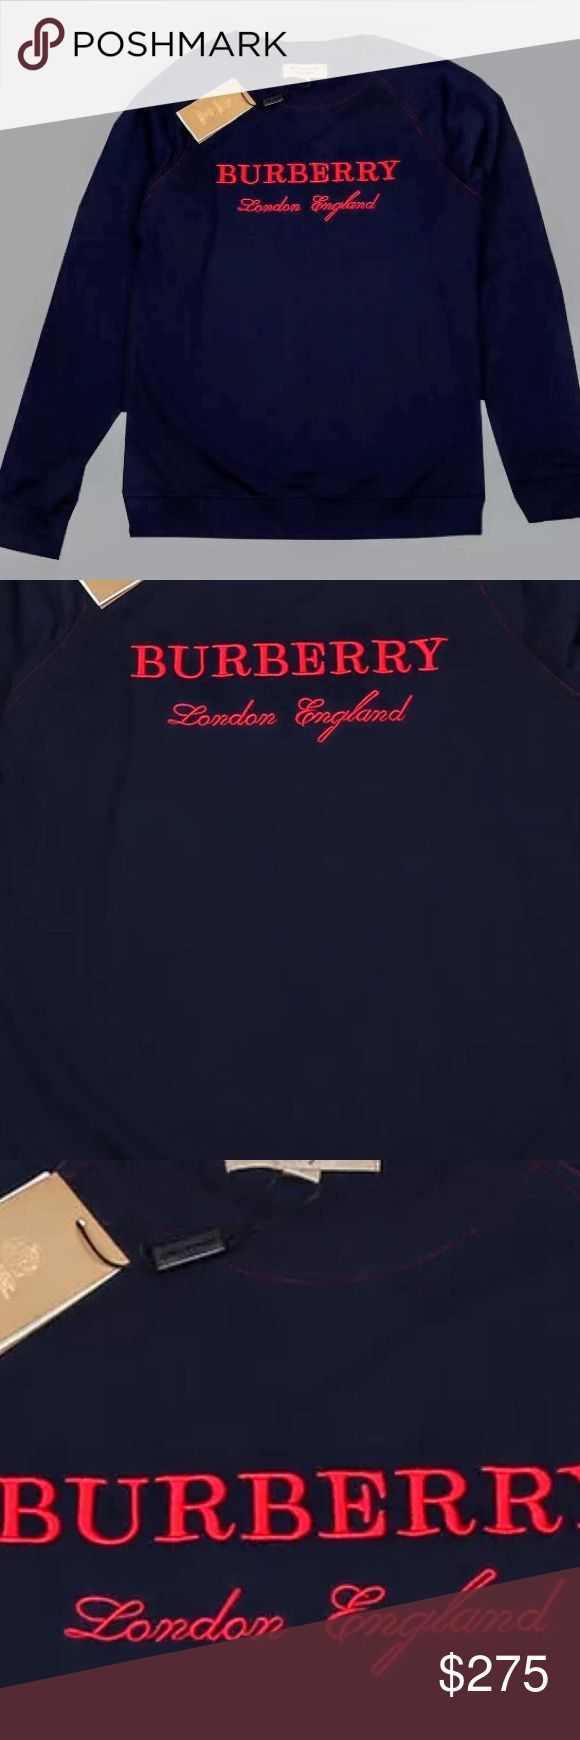 "🔥FINAL🔥NWT Men's Burberry Taydon Sweatshirt 💥$150 OFF!💥Brand new, authentic, crew neck sweatshirt for Men but definitely perfect for women as well. Navy Blue with red embroidered logo lettering on the chest. Very sharp and classy looking and easily dressed up or down! 💥Tagged ""L"" as well as ""OS"" it's Perfect for a Med or Large... roomier fit for a medium and measures out to a large. Can't go wrong with this one!!  Chest: Burberry Shirts Sweatshirts & Hoodies"